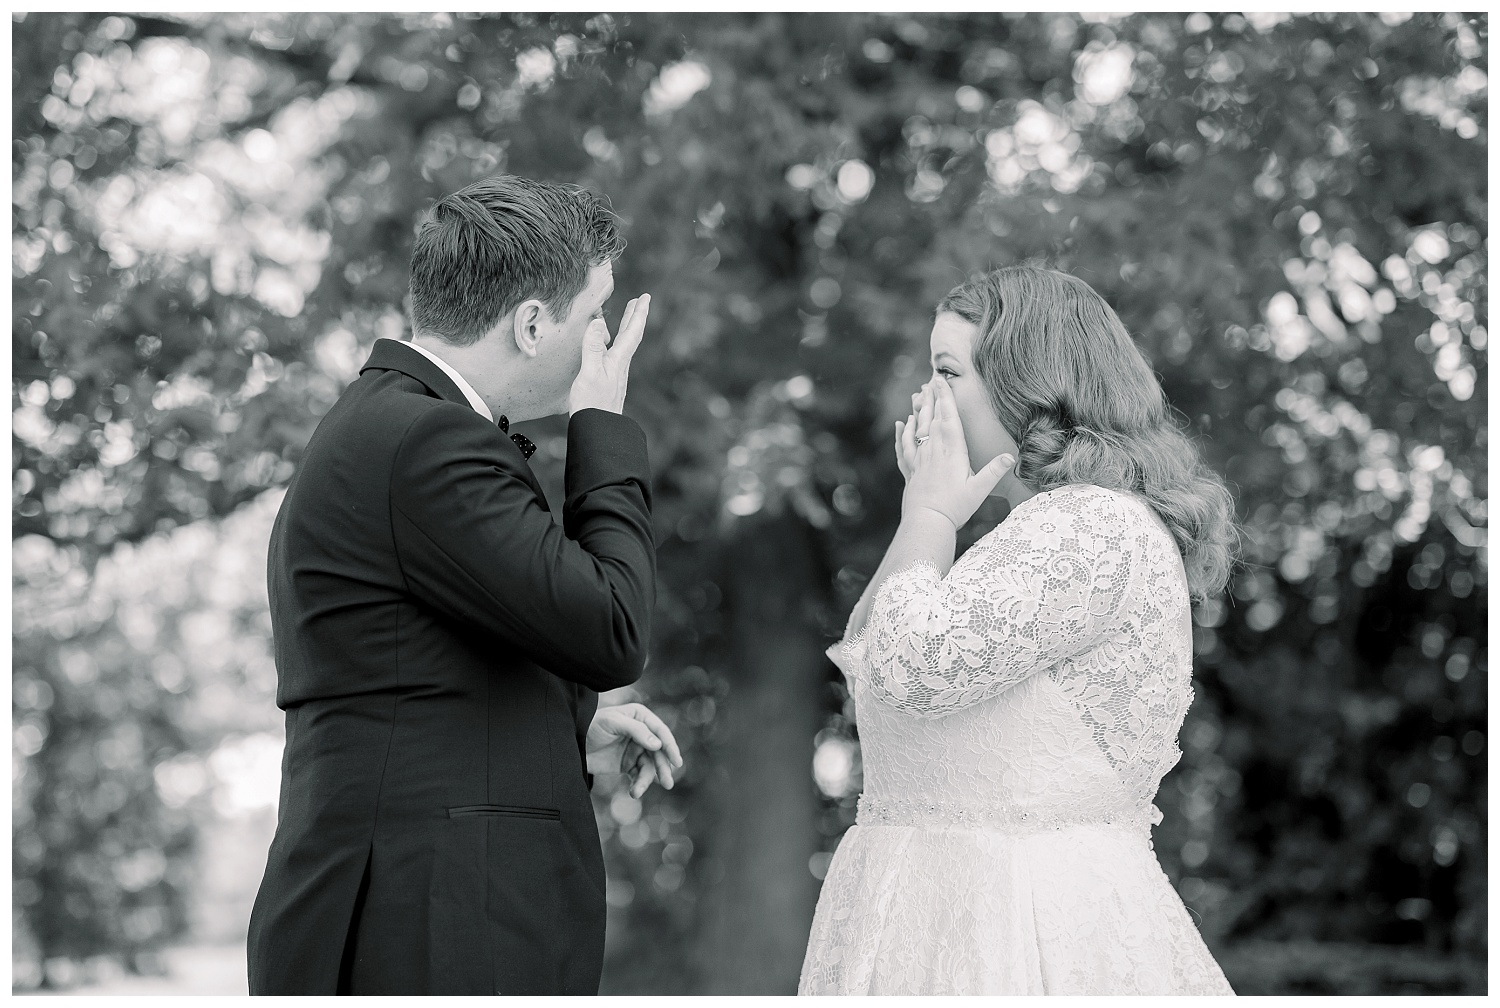 emotional first looks on wedding days